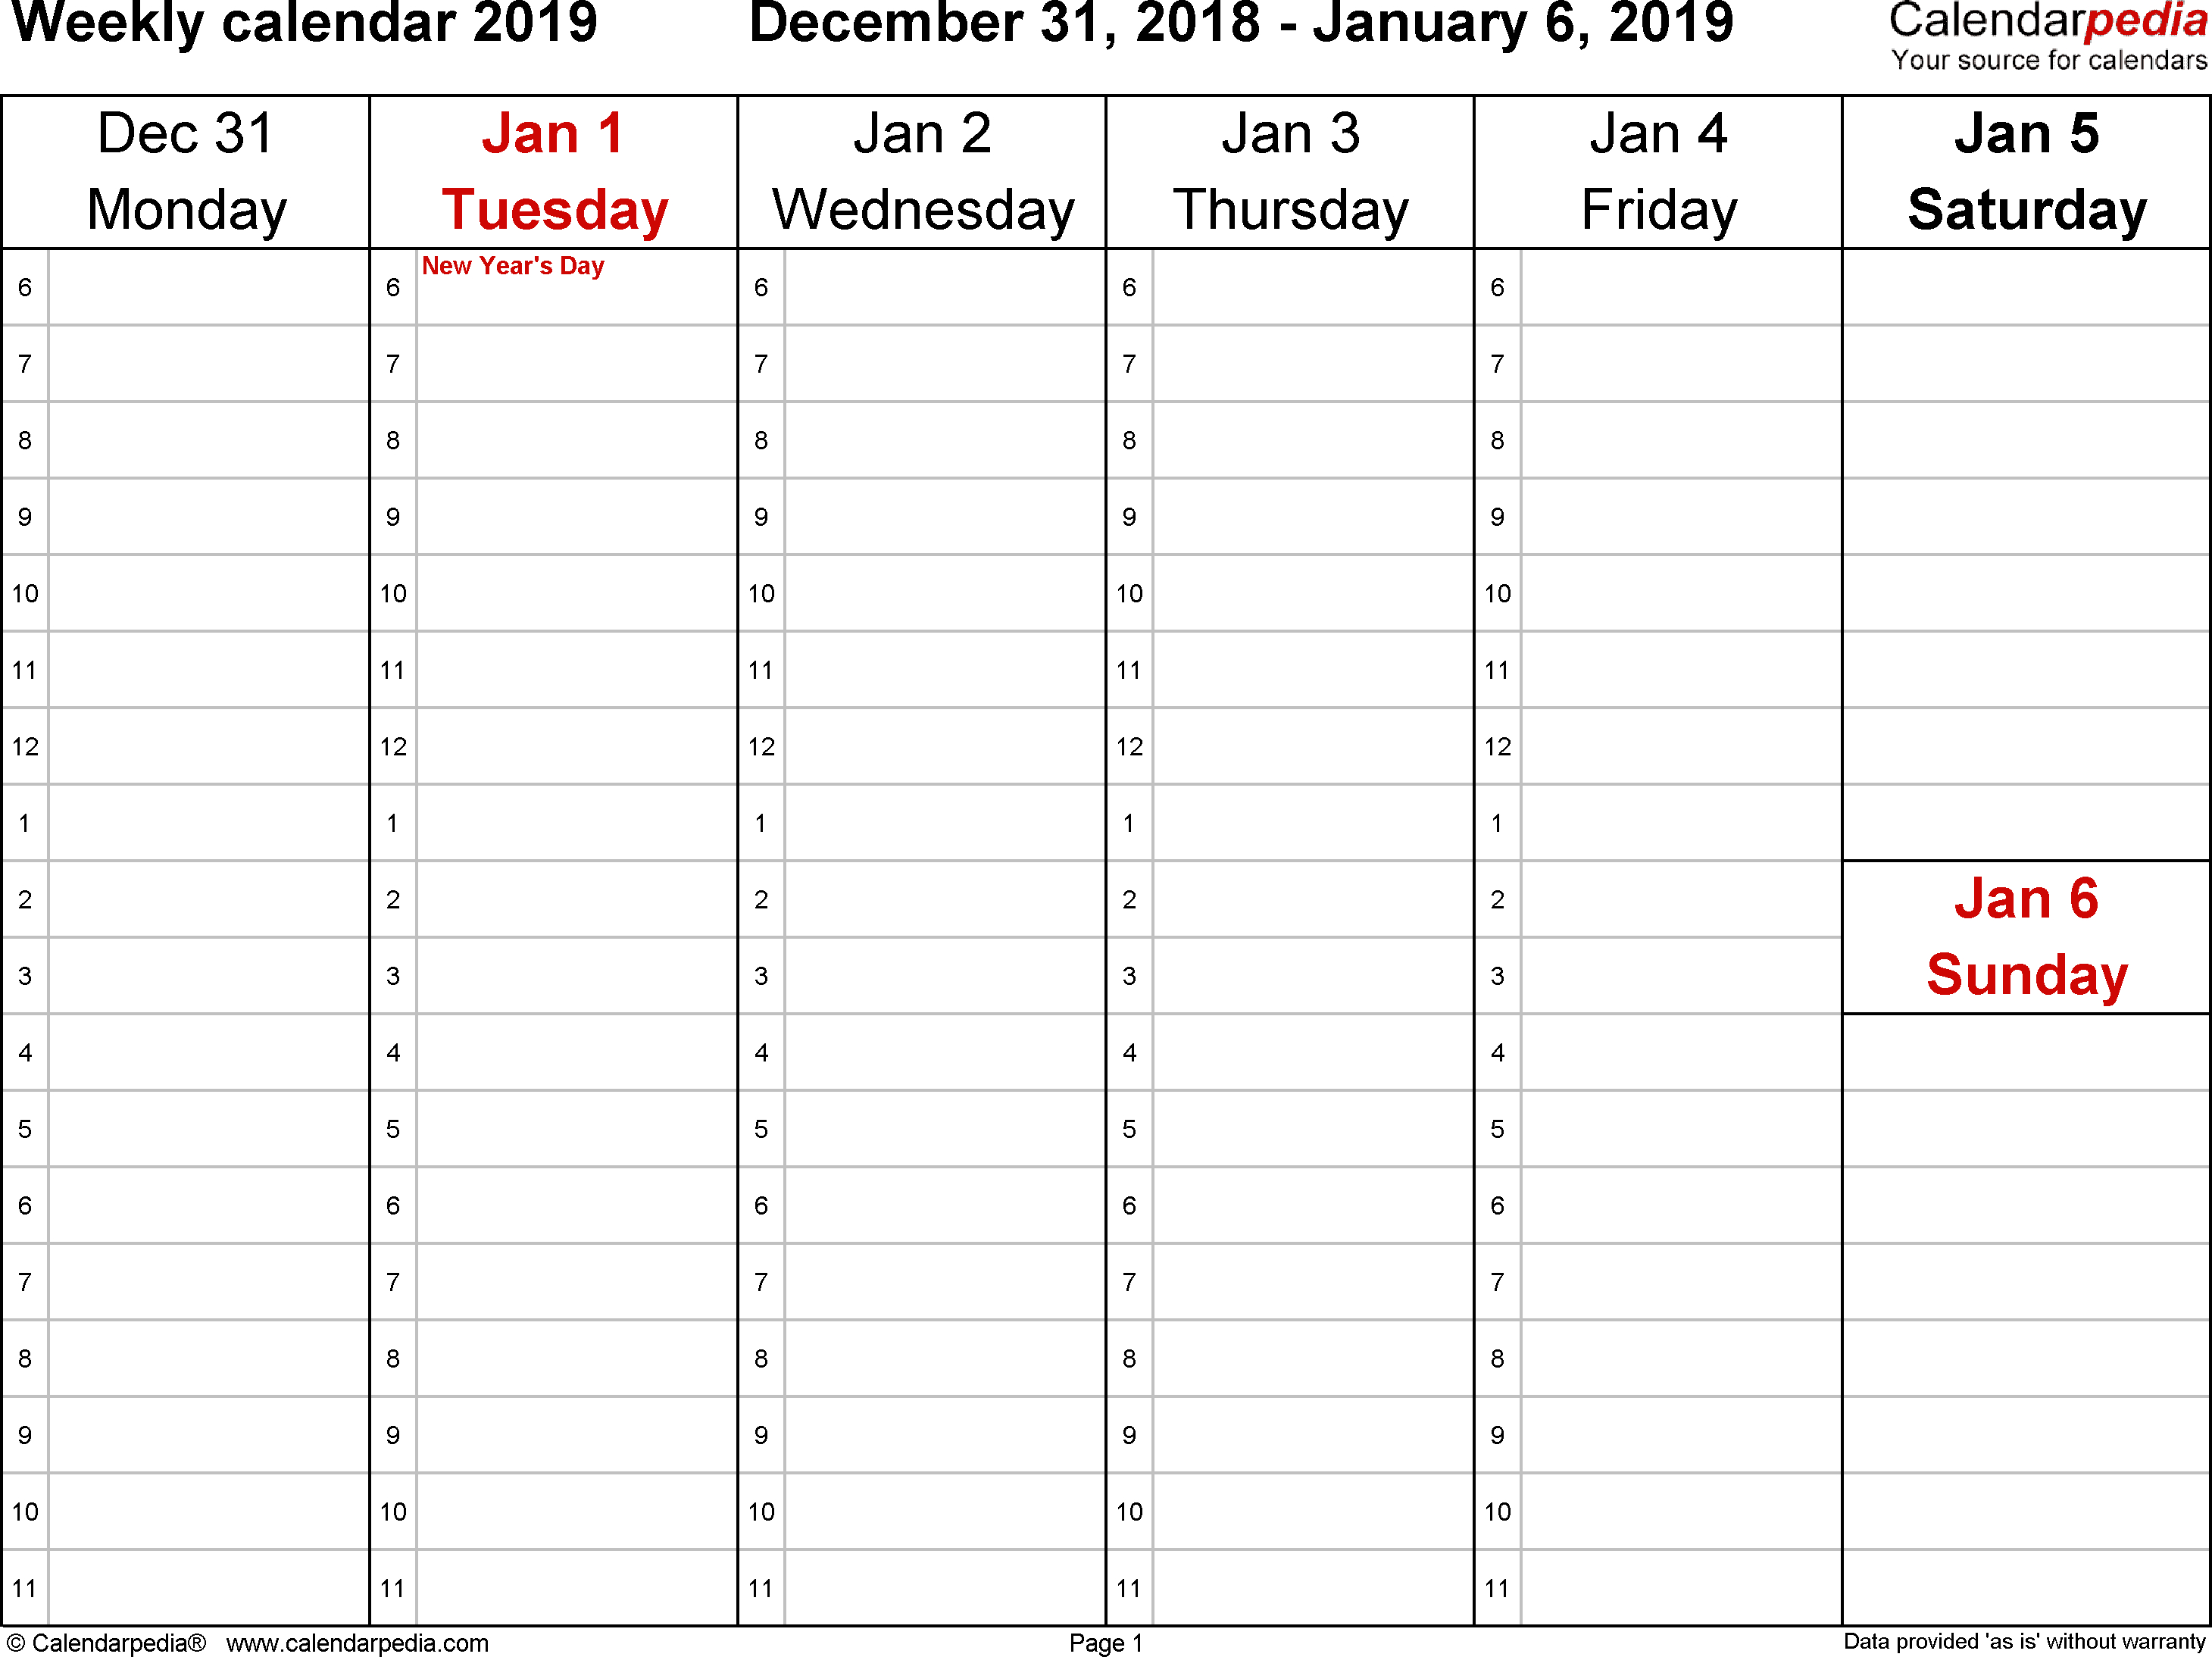 Weekly Calendar 2019 For Word - 12 Free Printable Templates pertaining to Printable Calendar Template Week Day Only